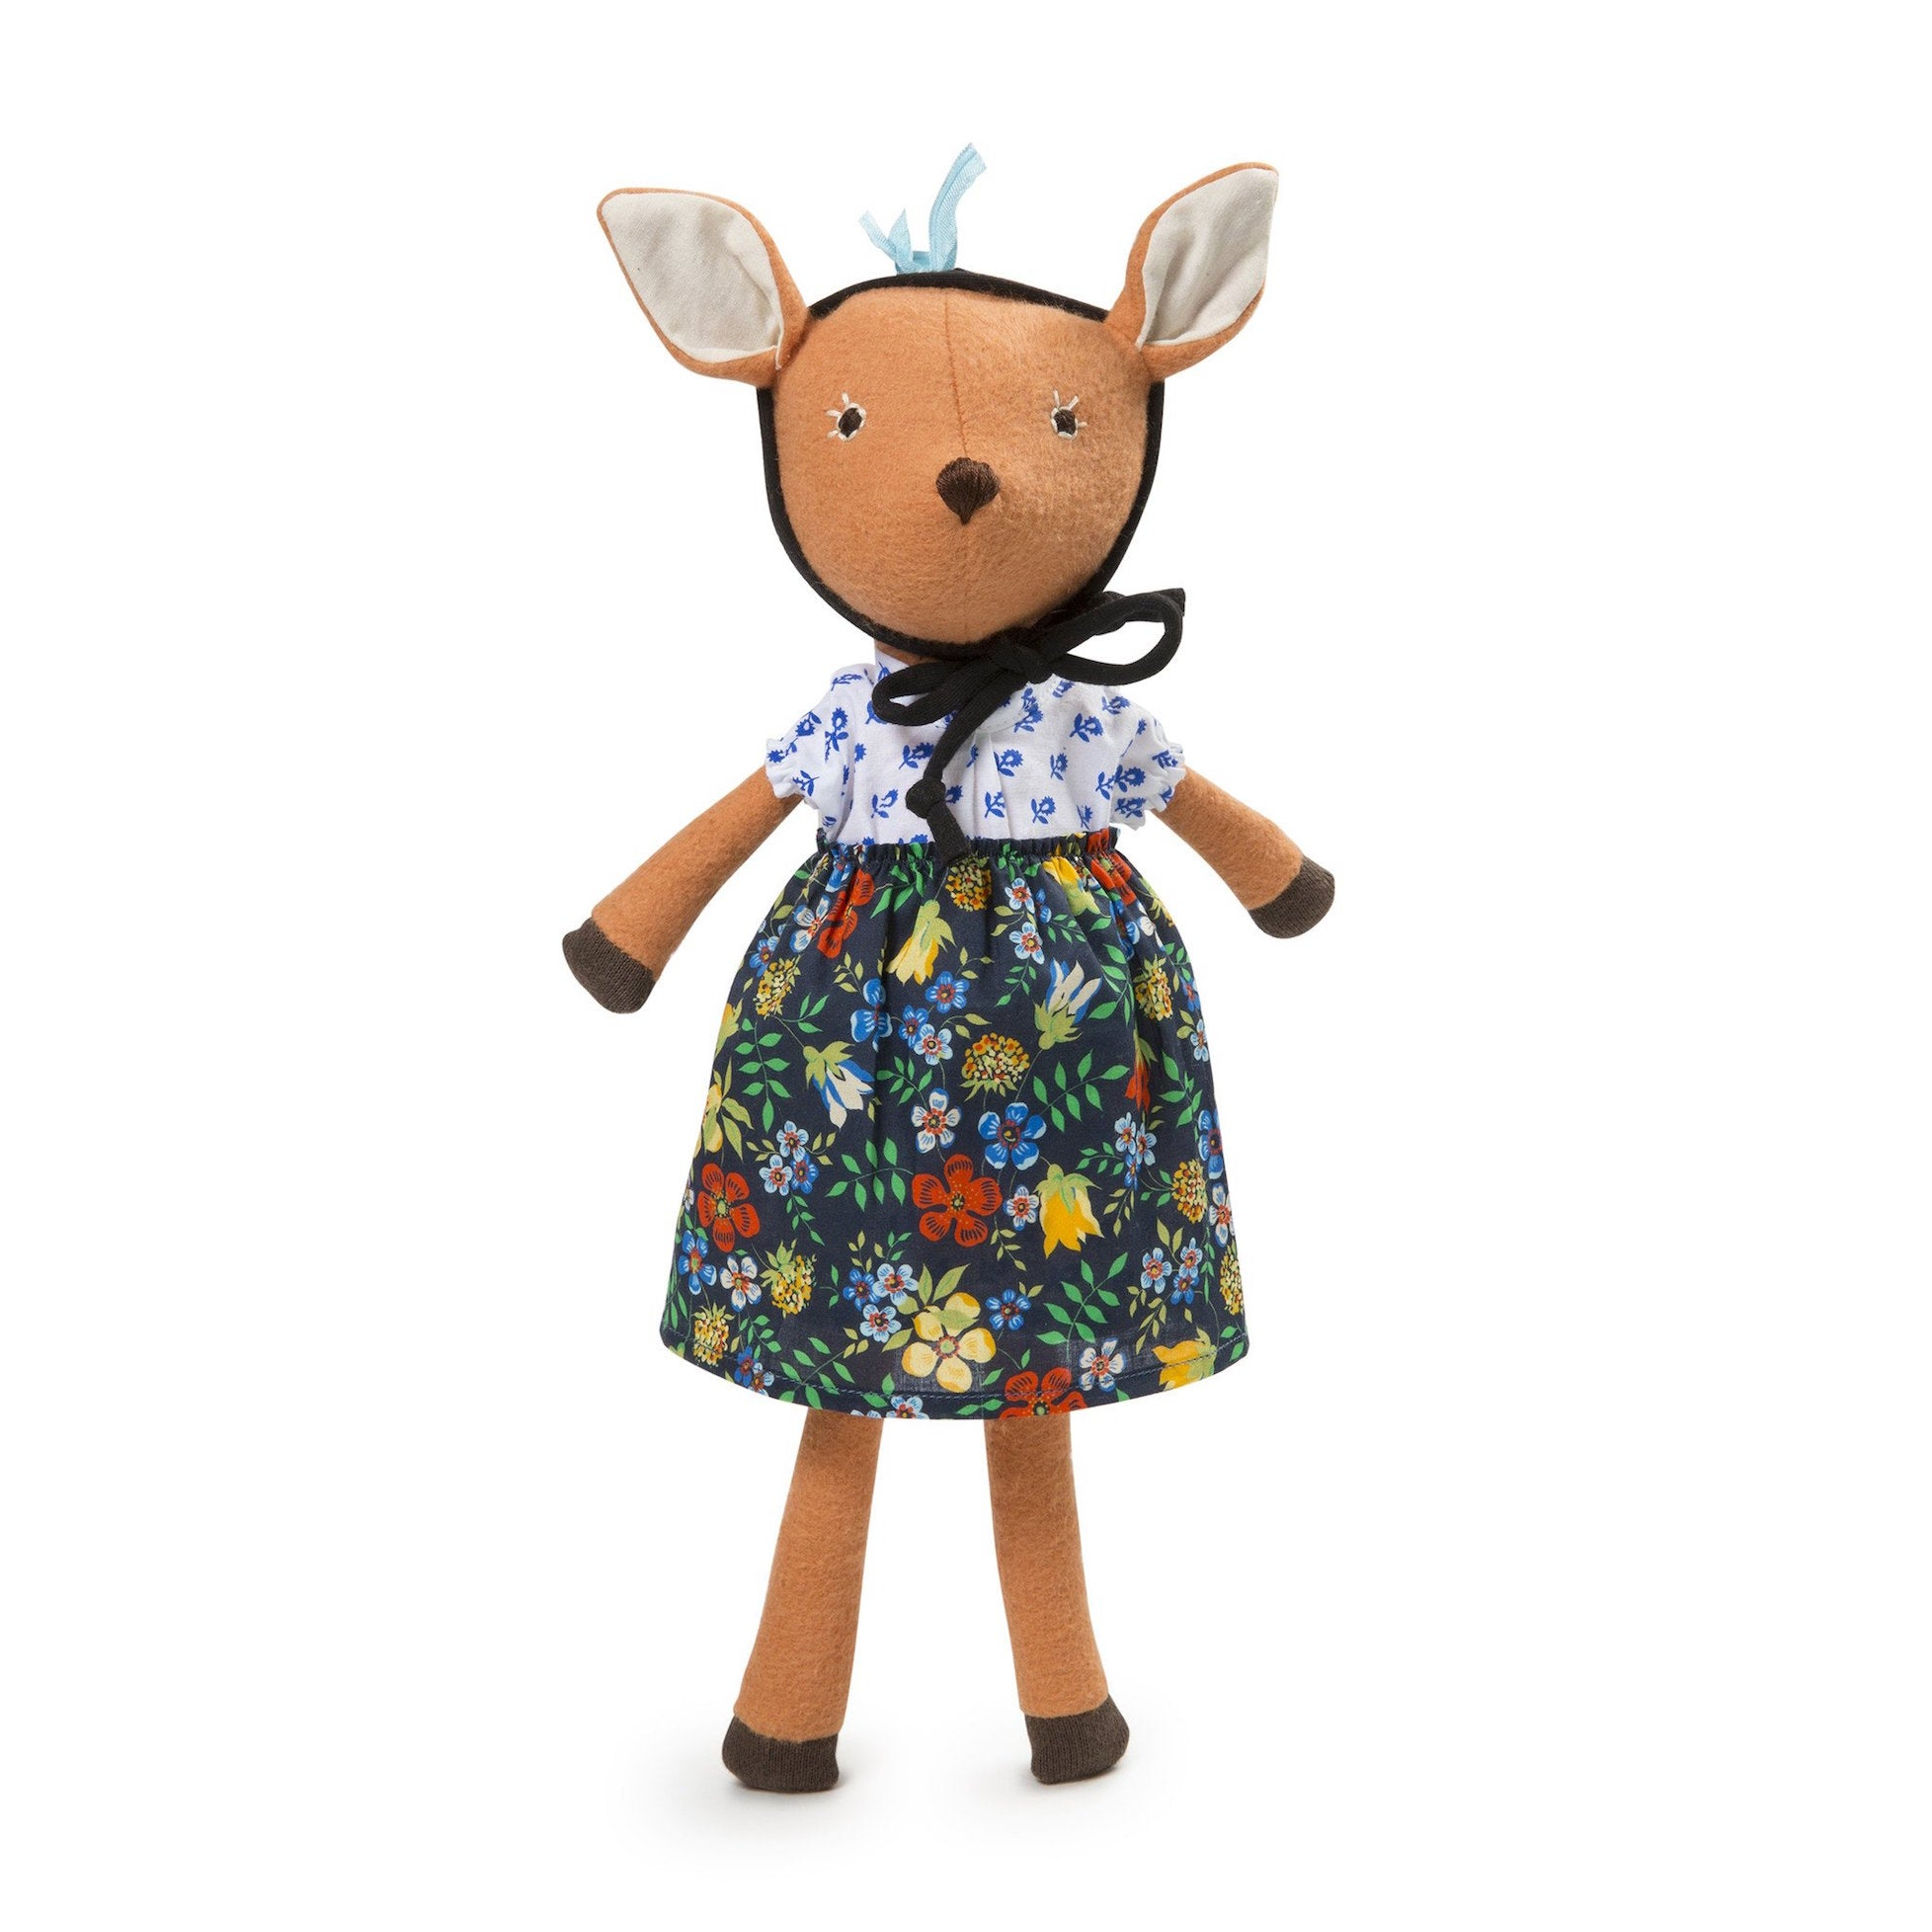 Hazel Village organic cotton doll - Phoebe the Fawn in cornflower blouse outfit